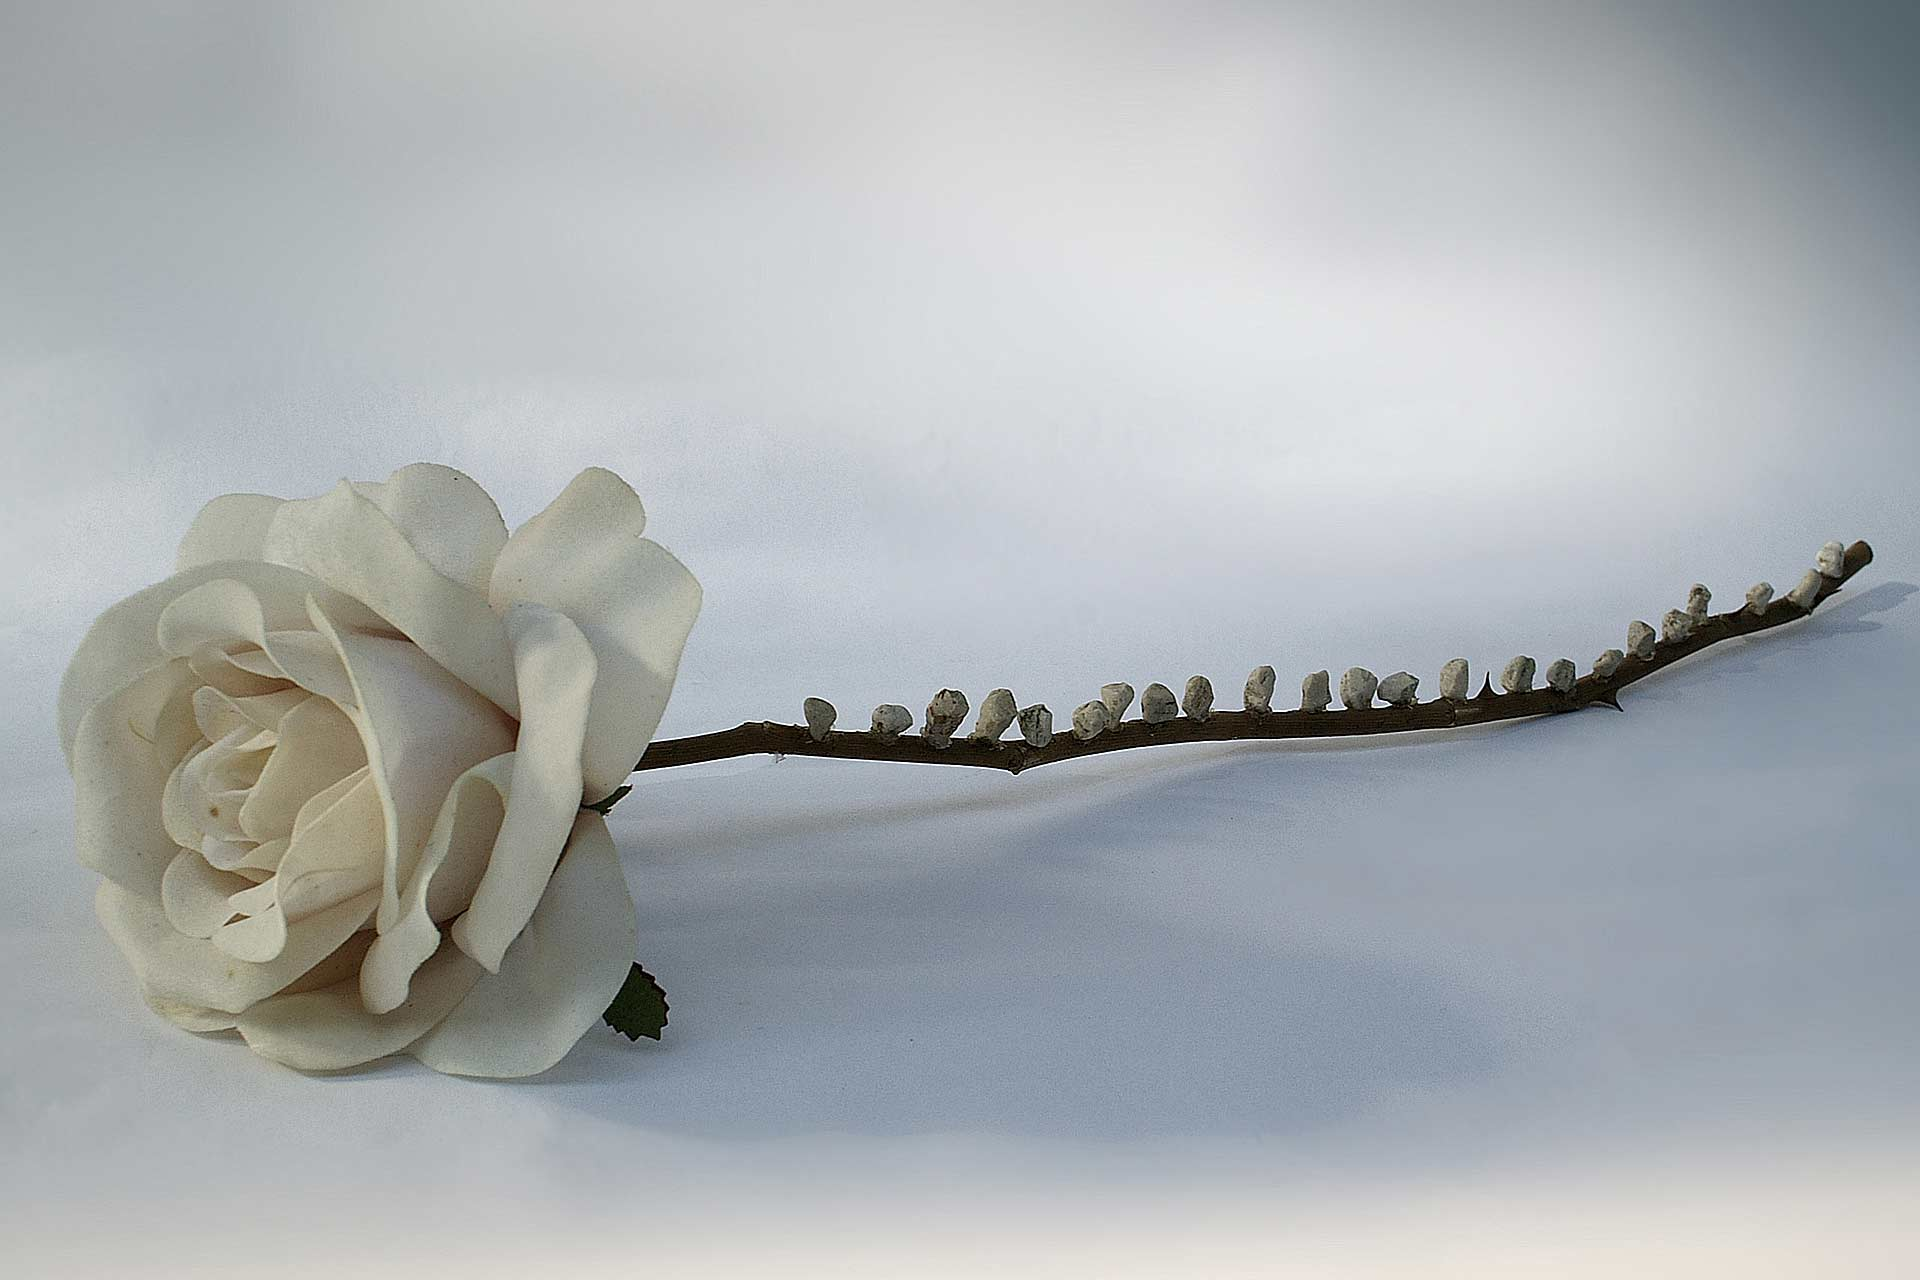 A rose has 23 teeth 2007, mixed media installation